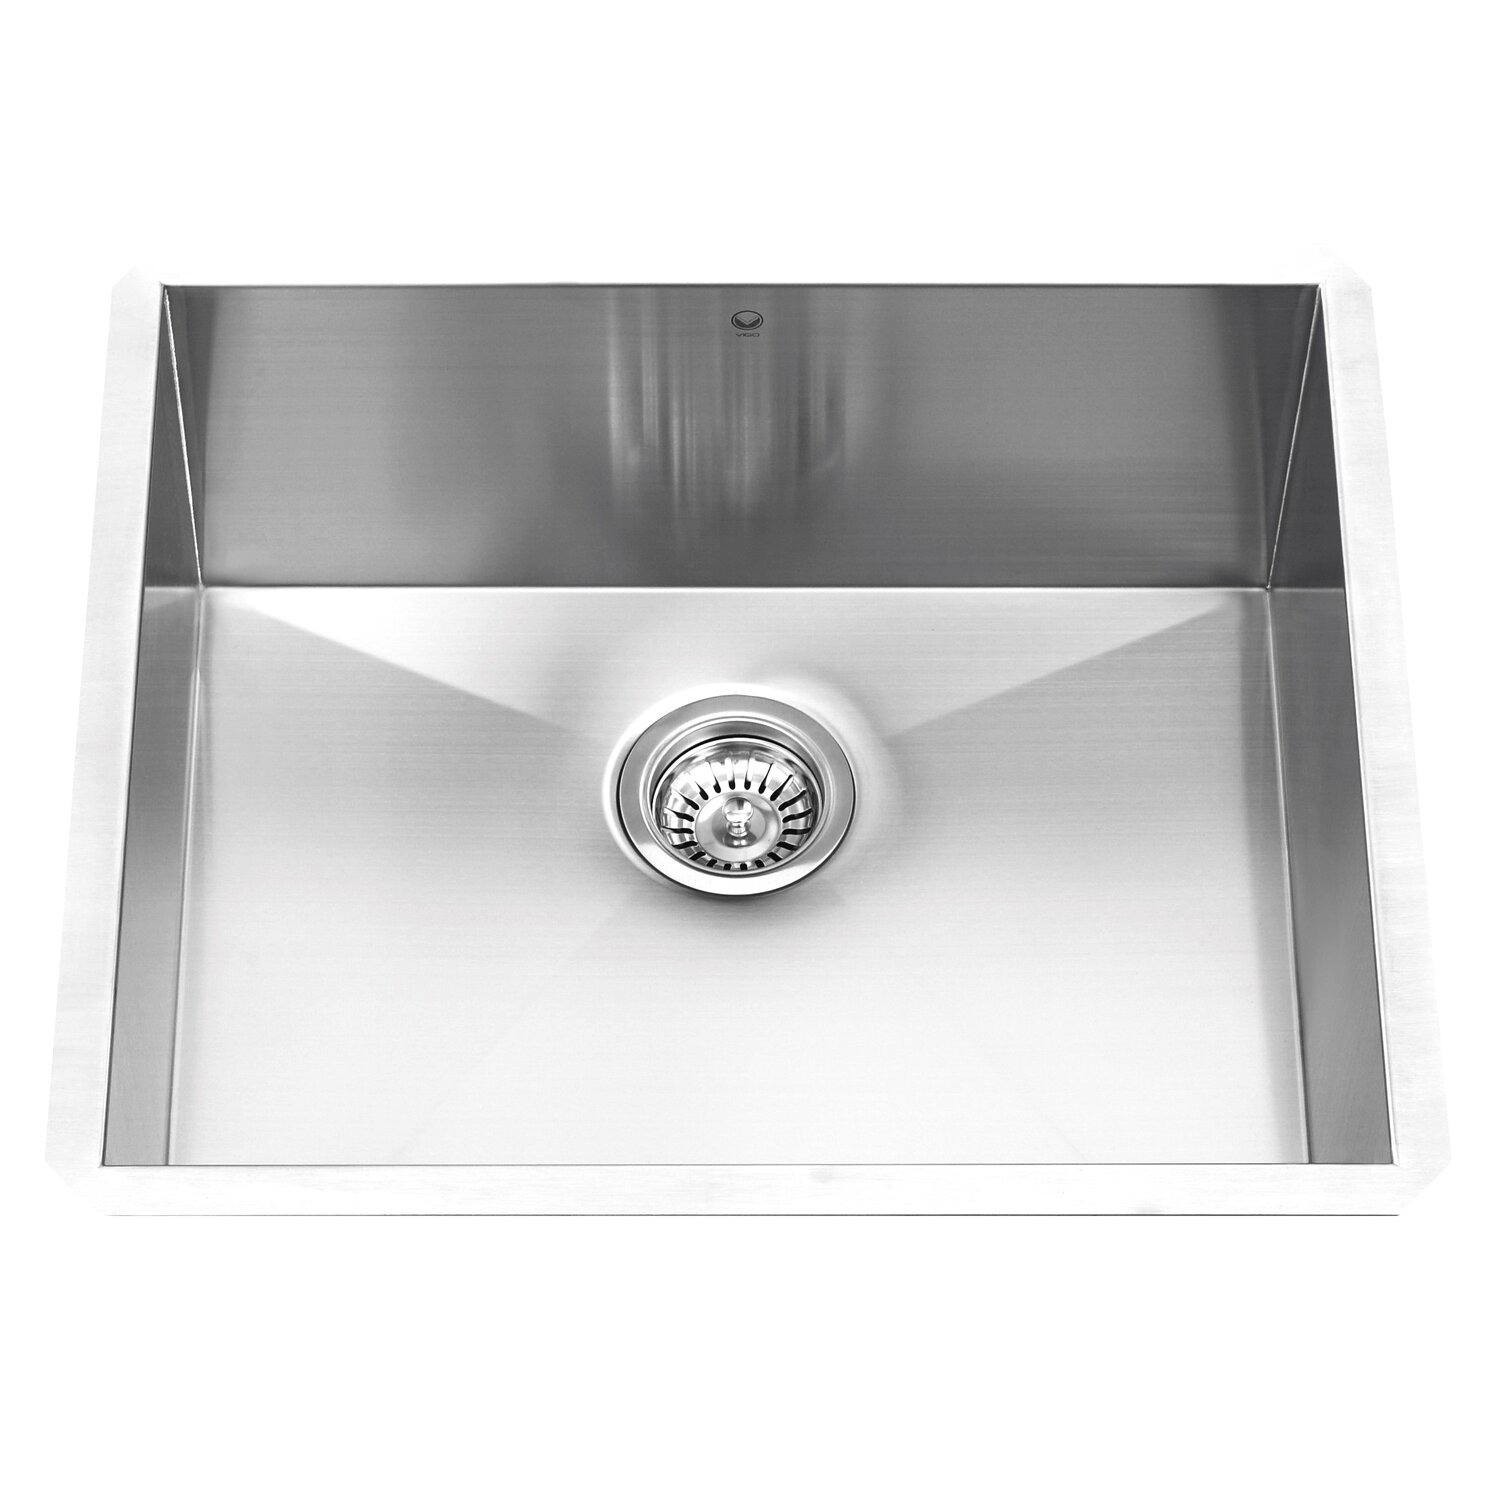 23 inch undermount single bowl 16 gauge stainless steel kitchen sink - Stainless Steel Kitchen Sink Gauge